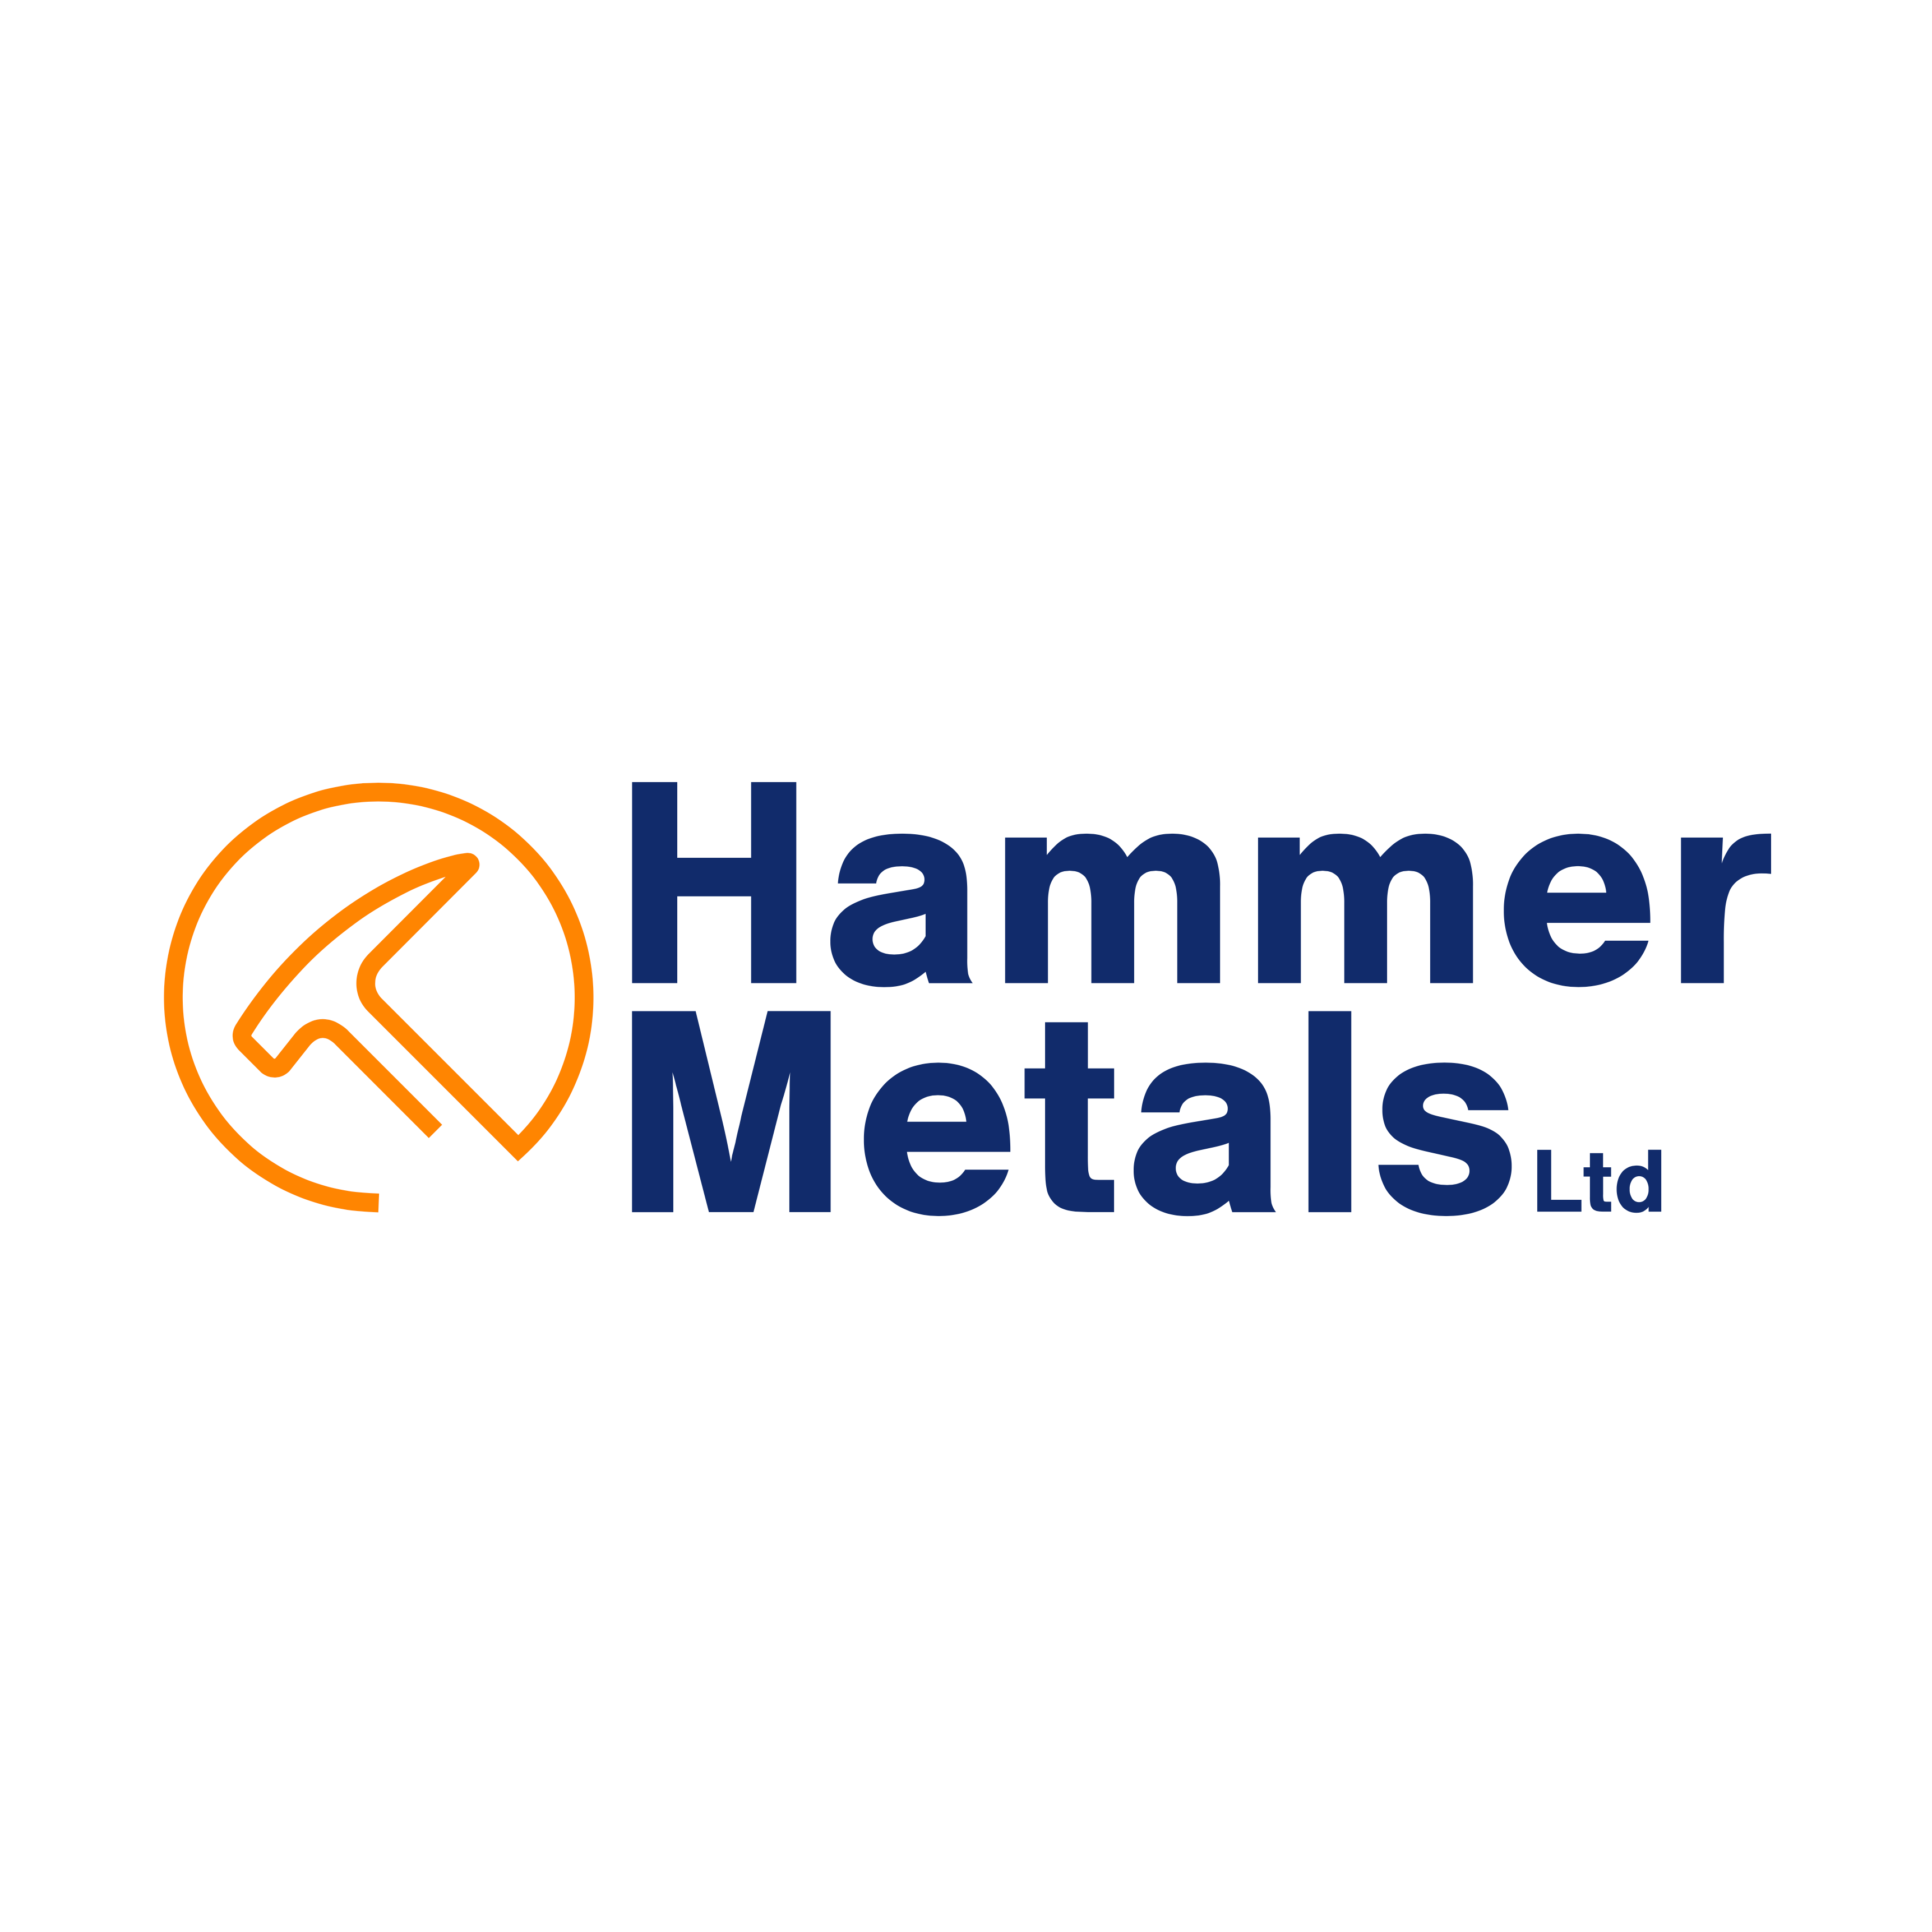 Hammer Metals Limited